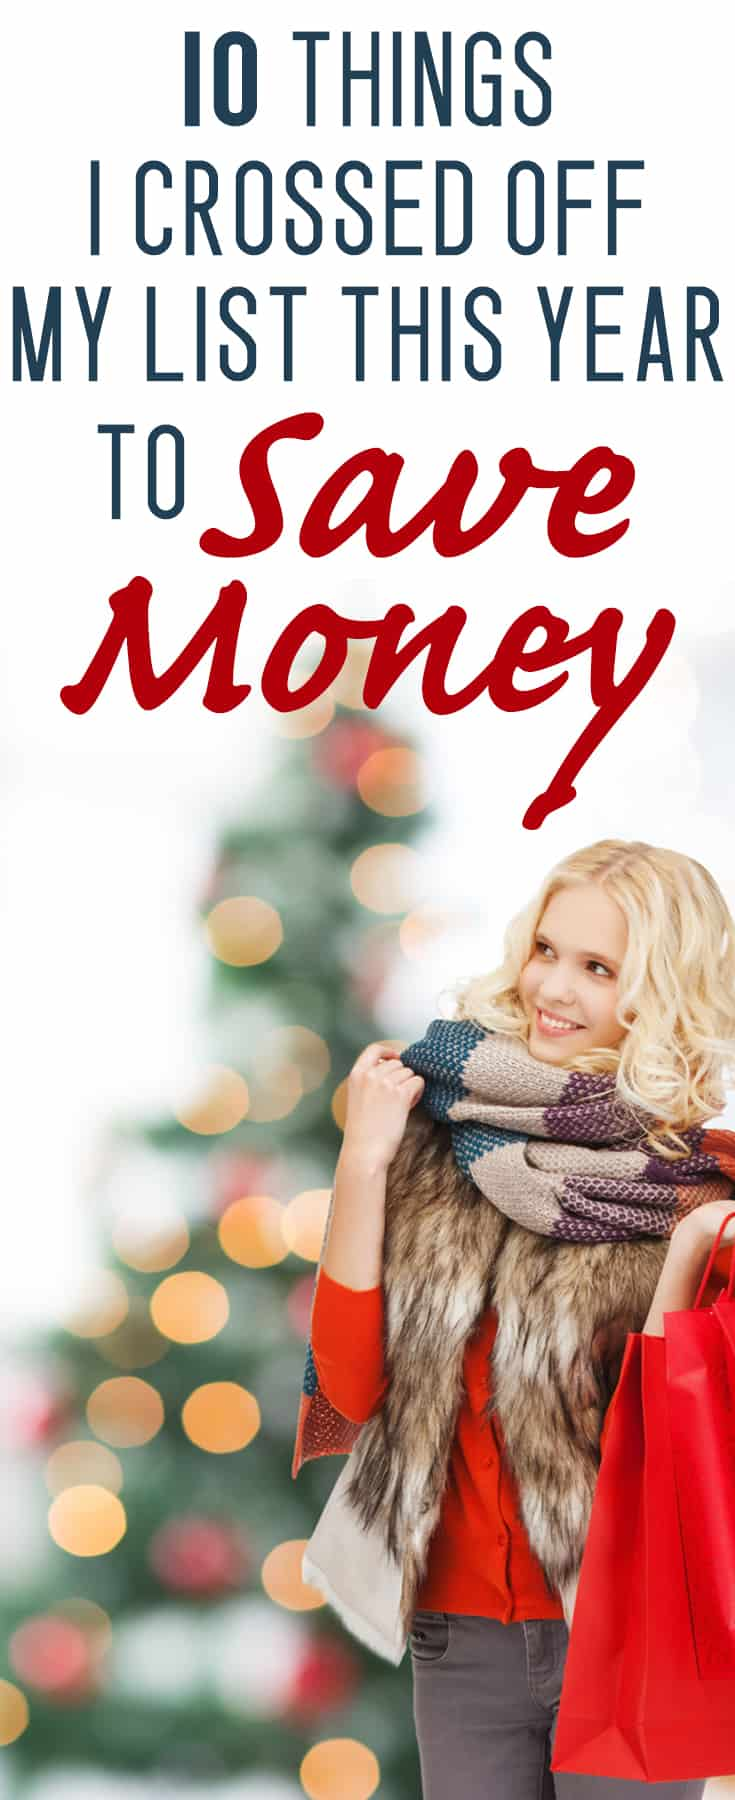 Christmas can get awfully expensive awfully fast. Save money this Christmas by refusing to buy these things!